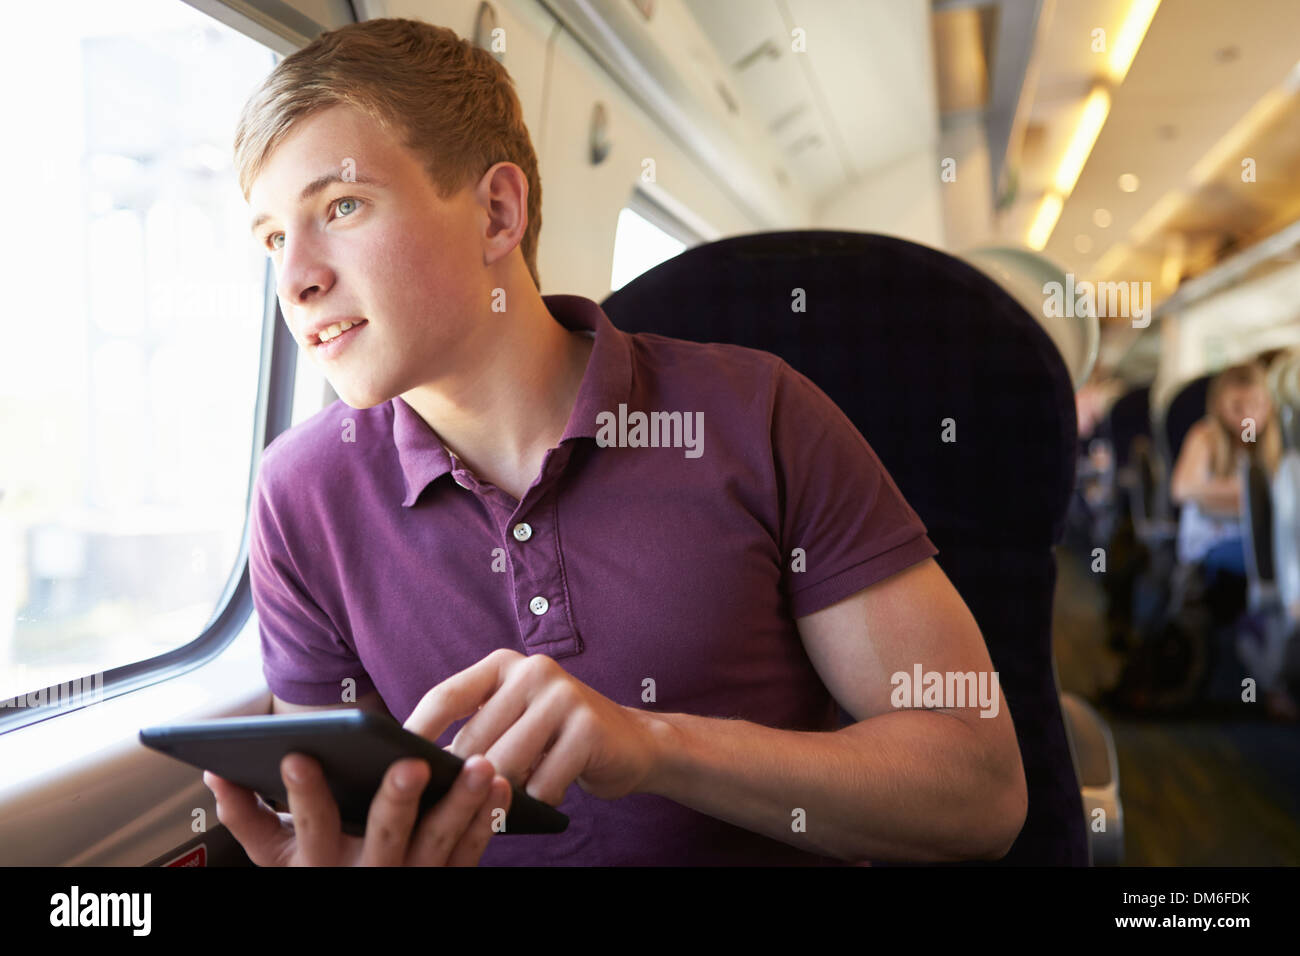 Young Man Reading E Book On Train Journey - Stock Image